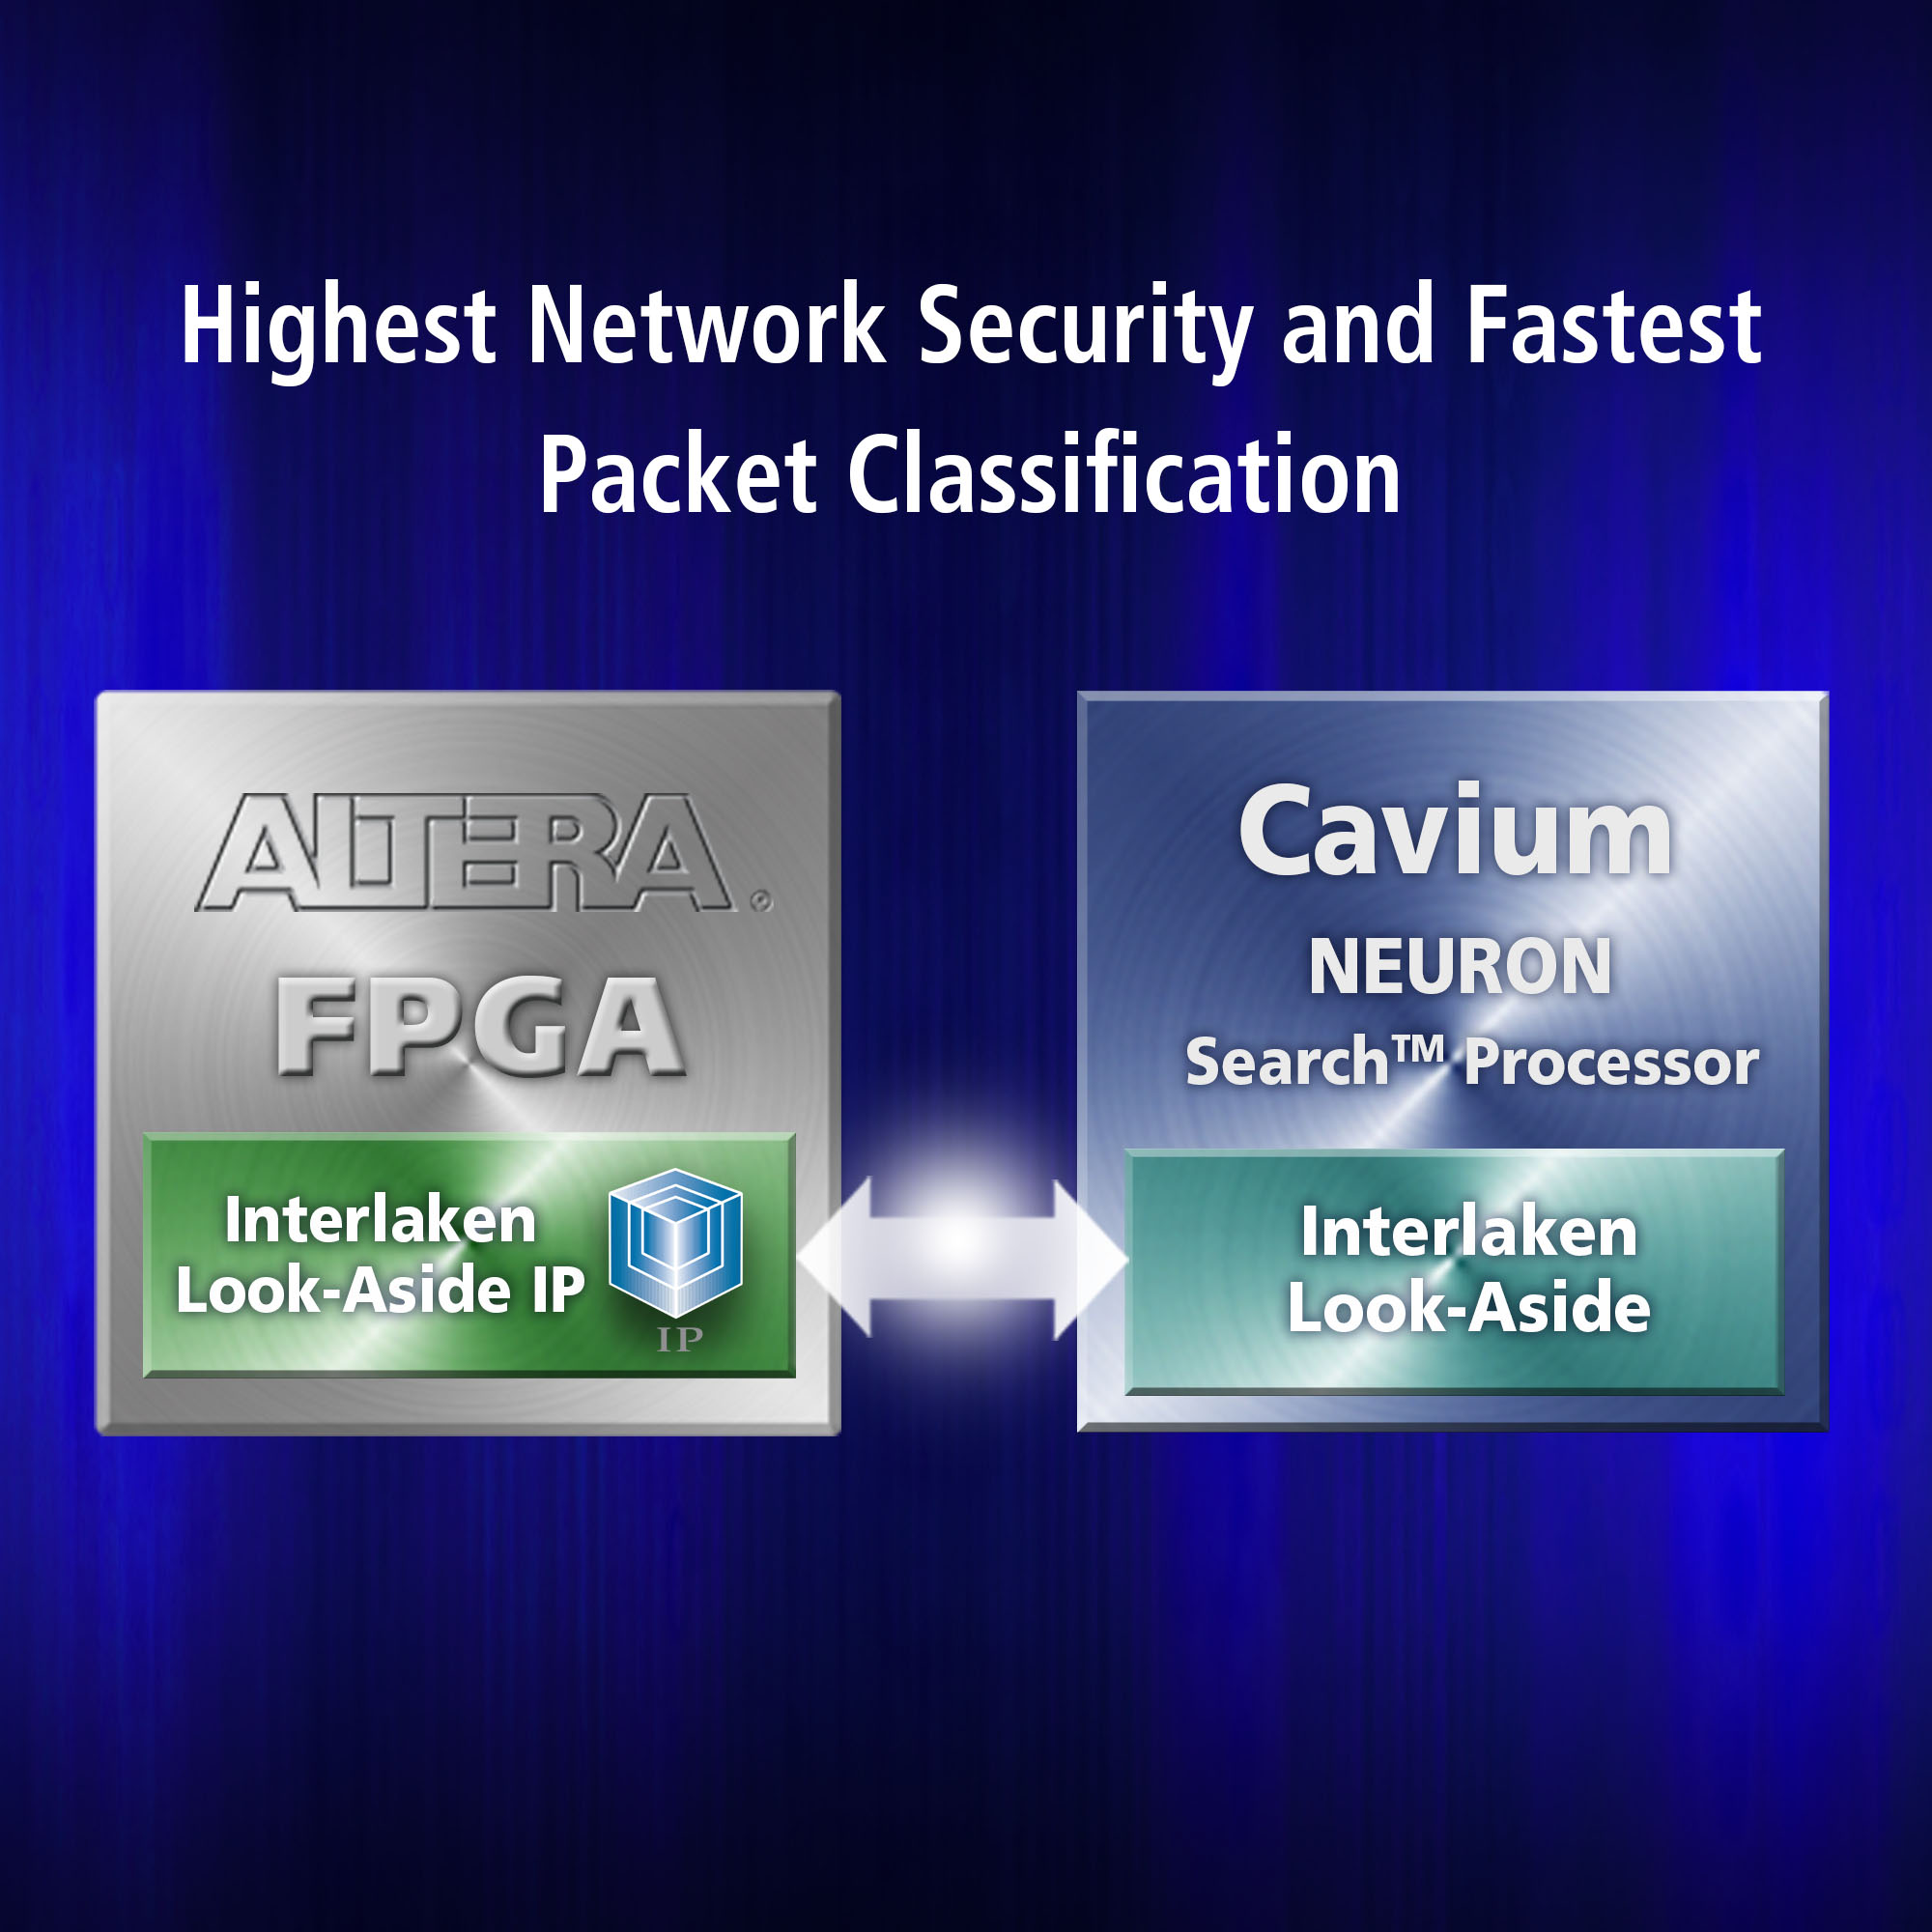 Performance metrics achieved using Altera's Interlaken Look-Aside IP core interfacing with Cavium's NEURON Search Processor